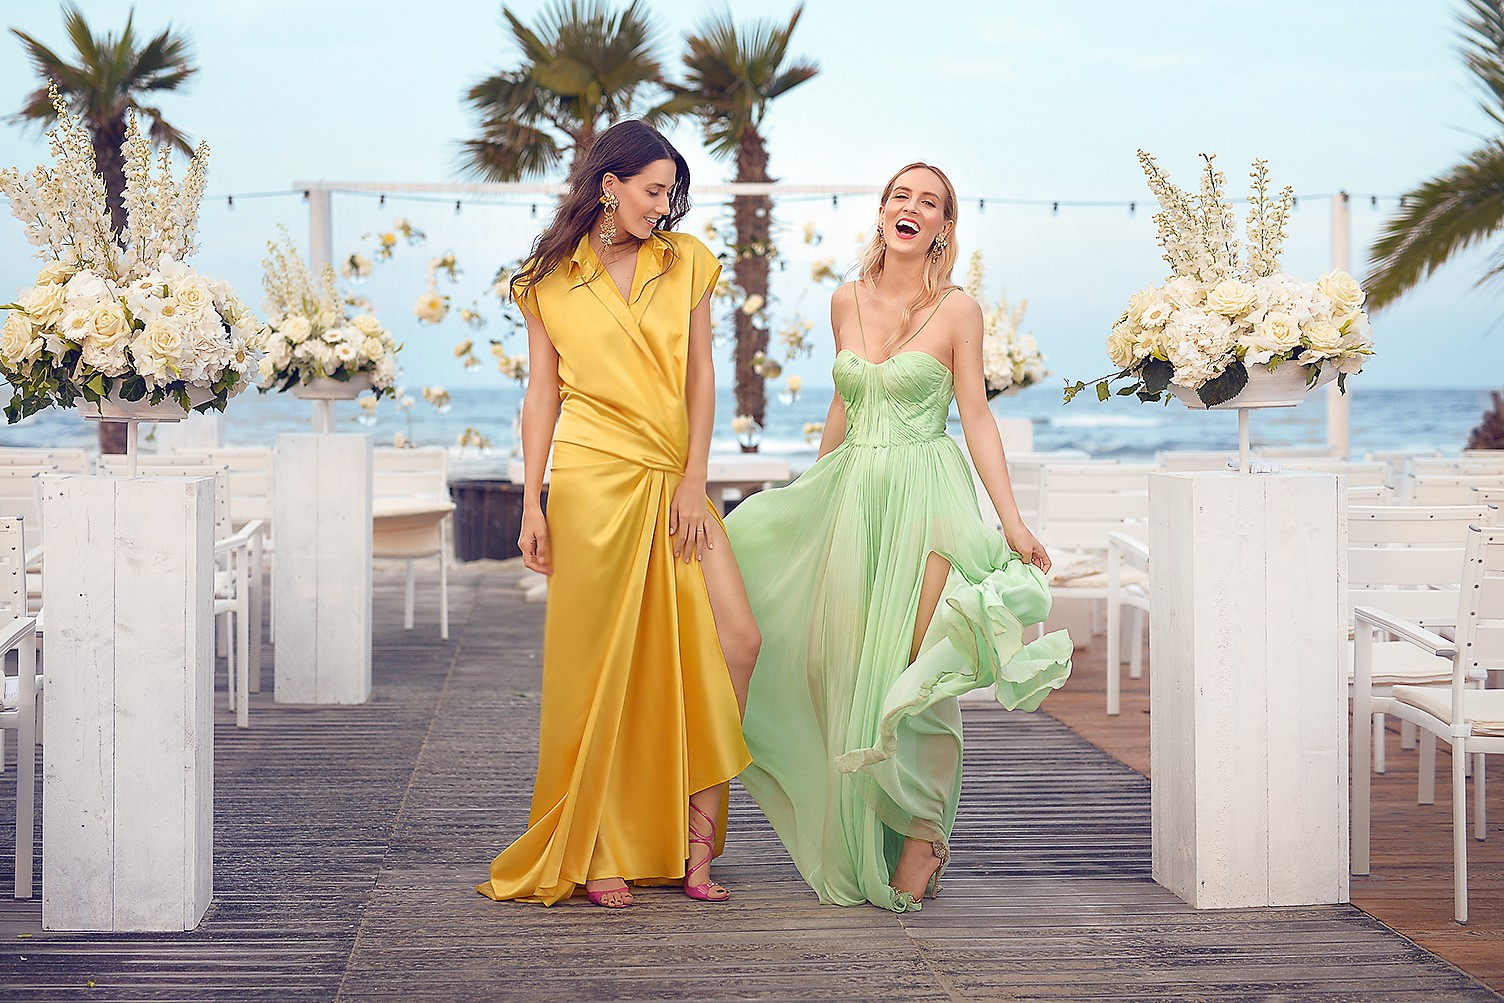 13fabulous_muses_loft_wedding_beach_wedding_dress_cocktail_dress_loft_mamaia copy